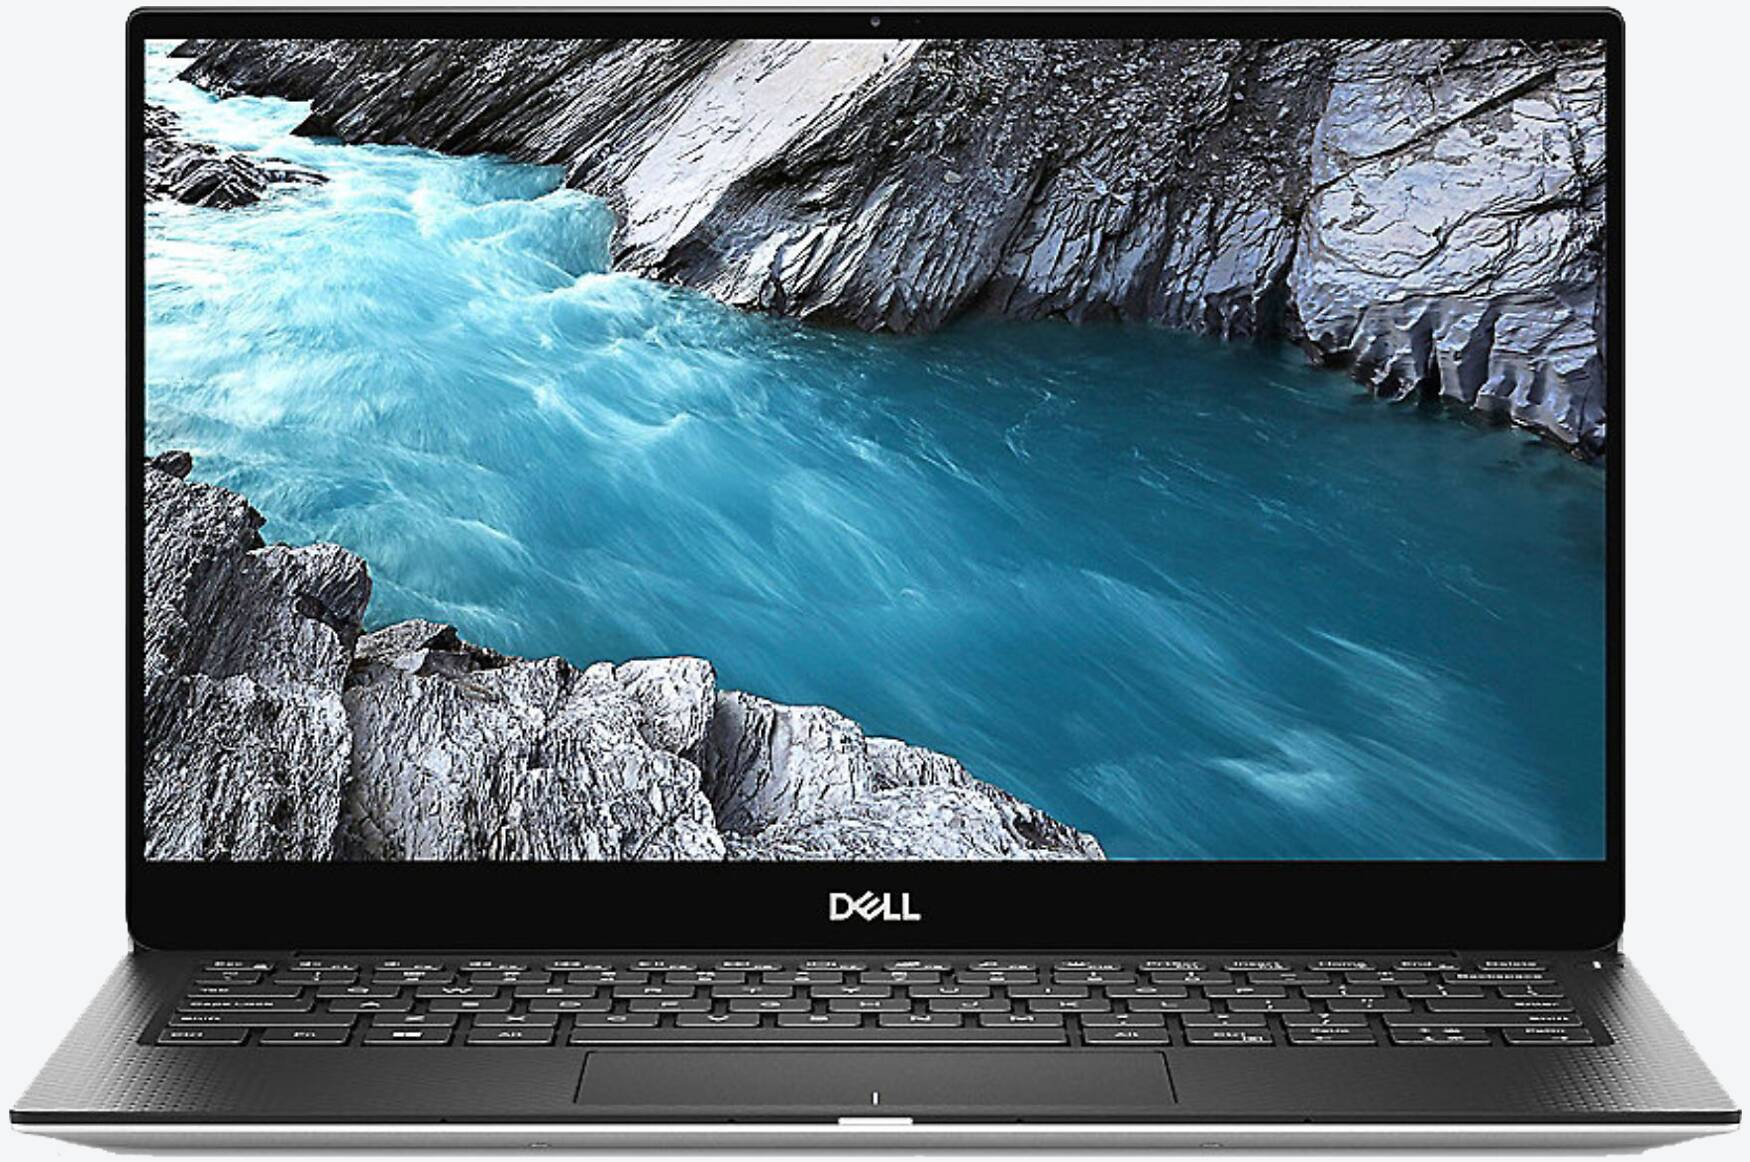 Dell XPS 13 (2019) 7390-19X72 UHD Touch